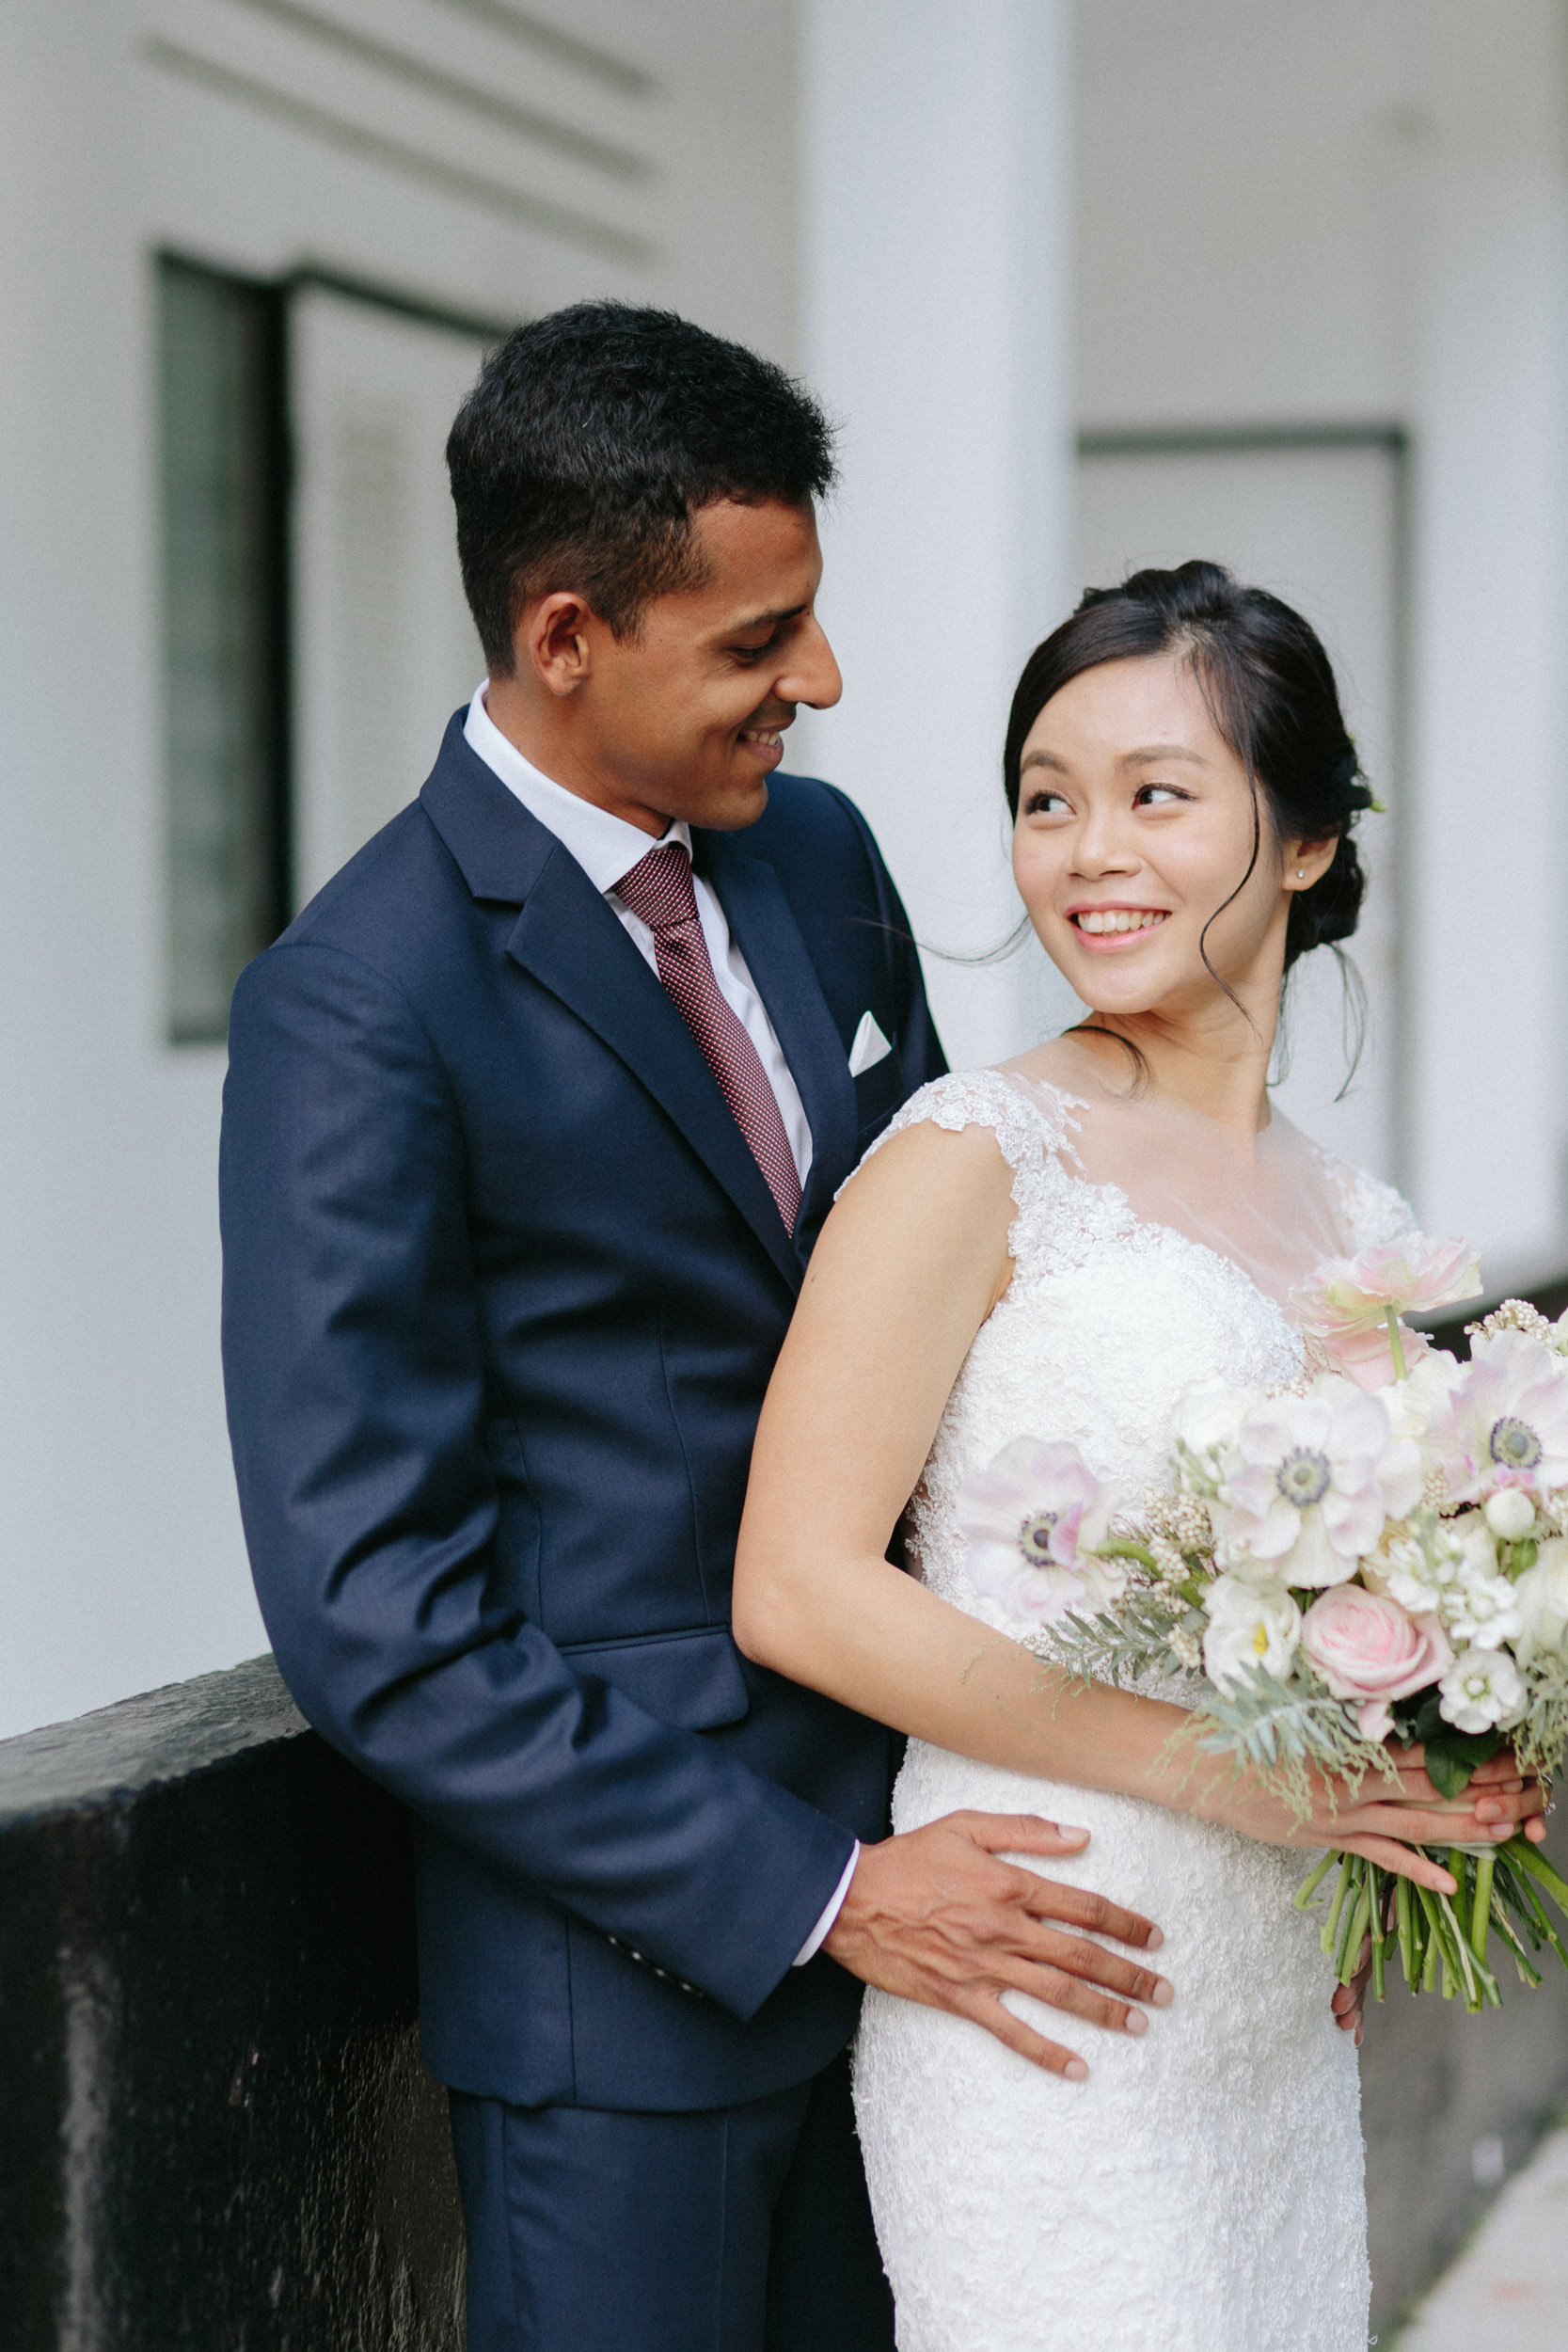 singapore-wedding-photographer-wemadethese-suriya-xinqi-02.jpg